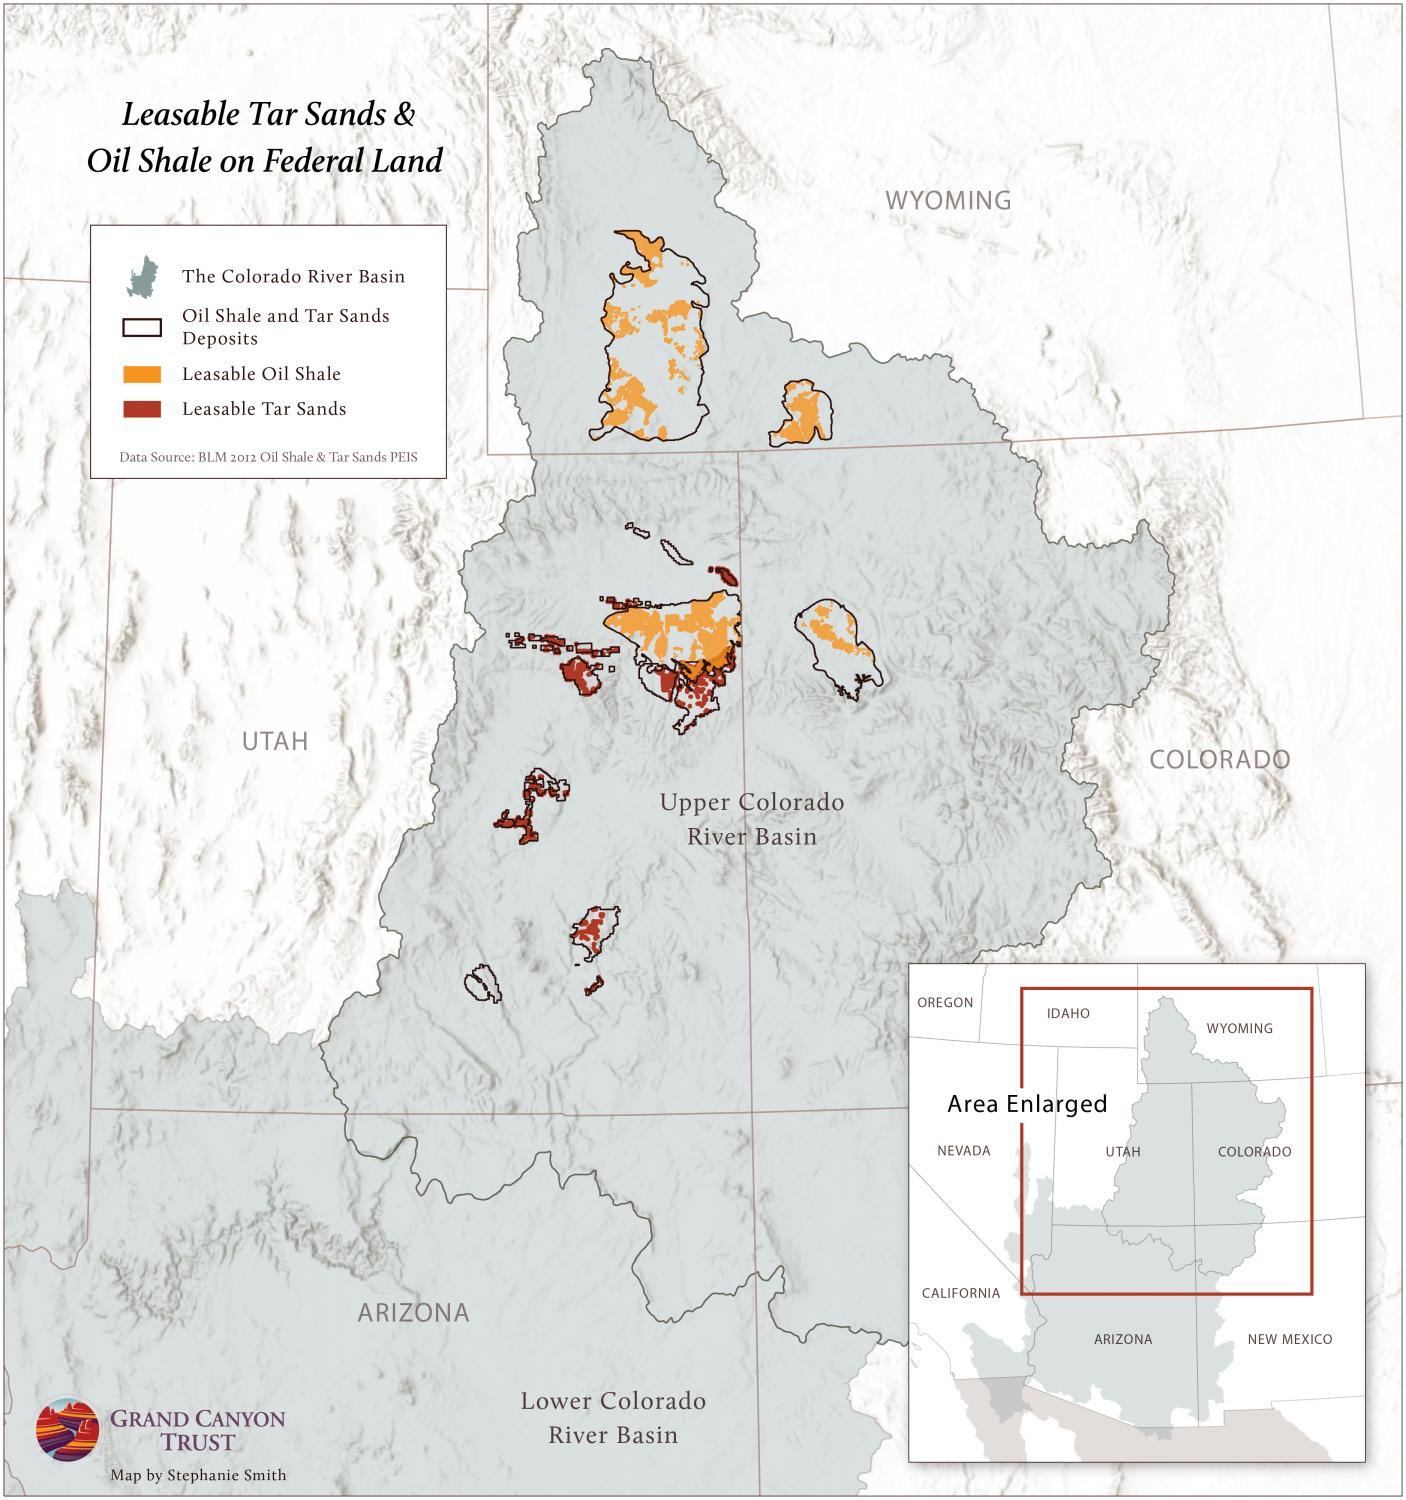 Leasable Tar Sands & Oil Shale on Federal Lands Map | Grand Canyon Trust